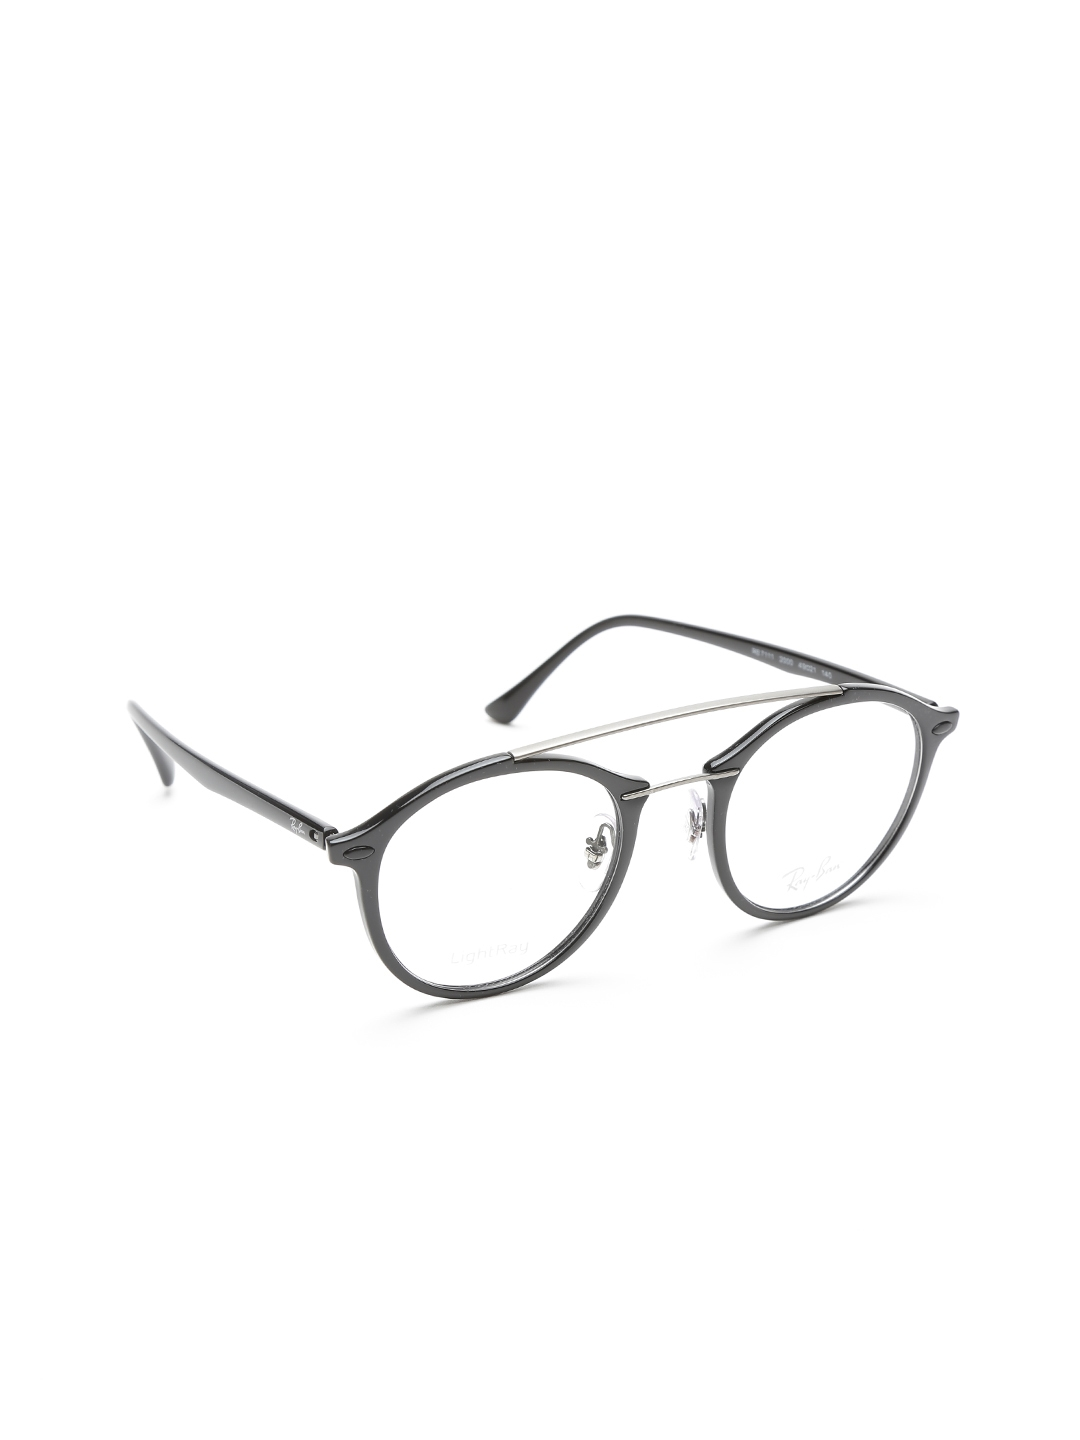 27c5318737a Buy Ray Ban Women Black Round Frames 0RX7111200049 - Frames for ...